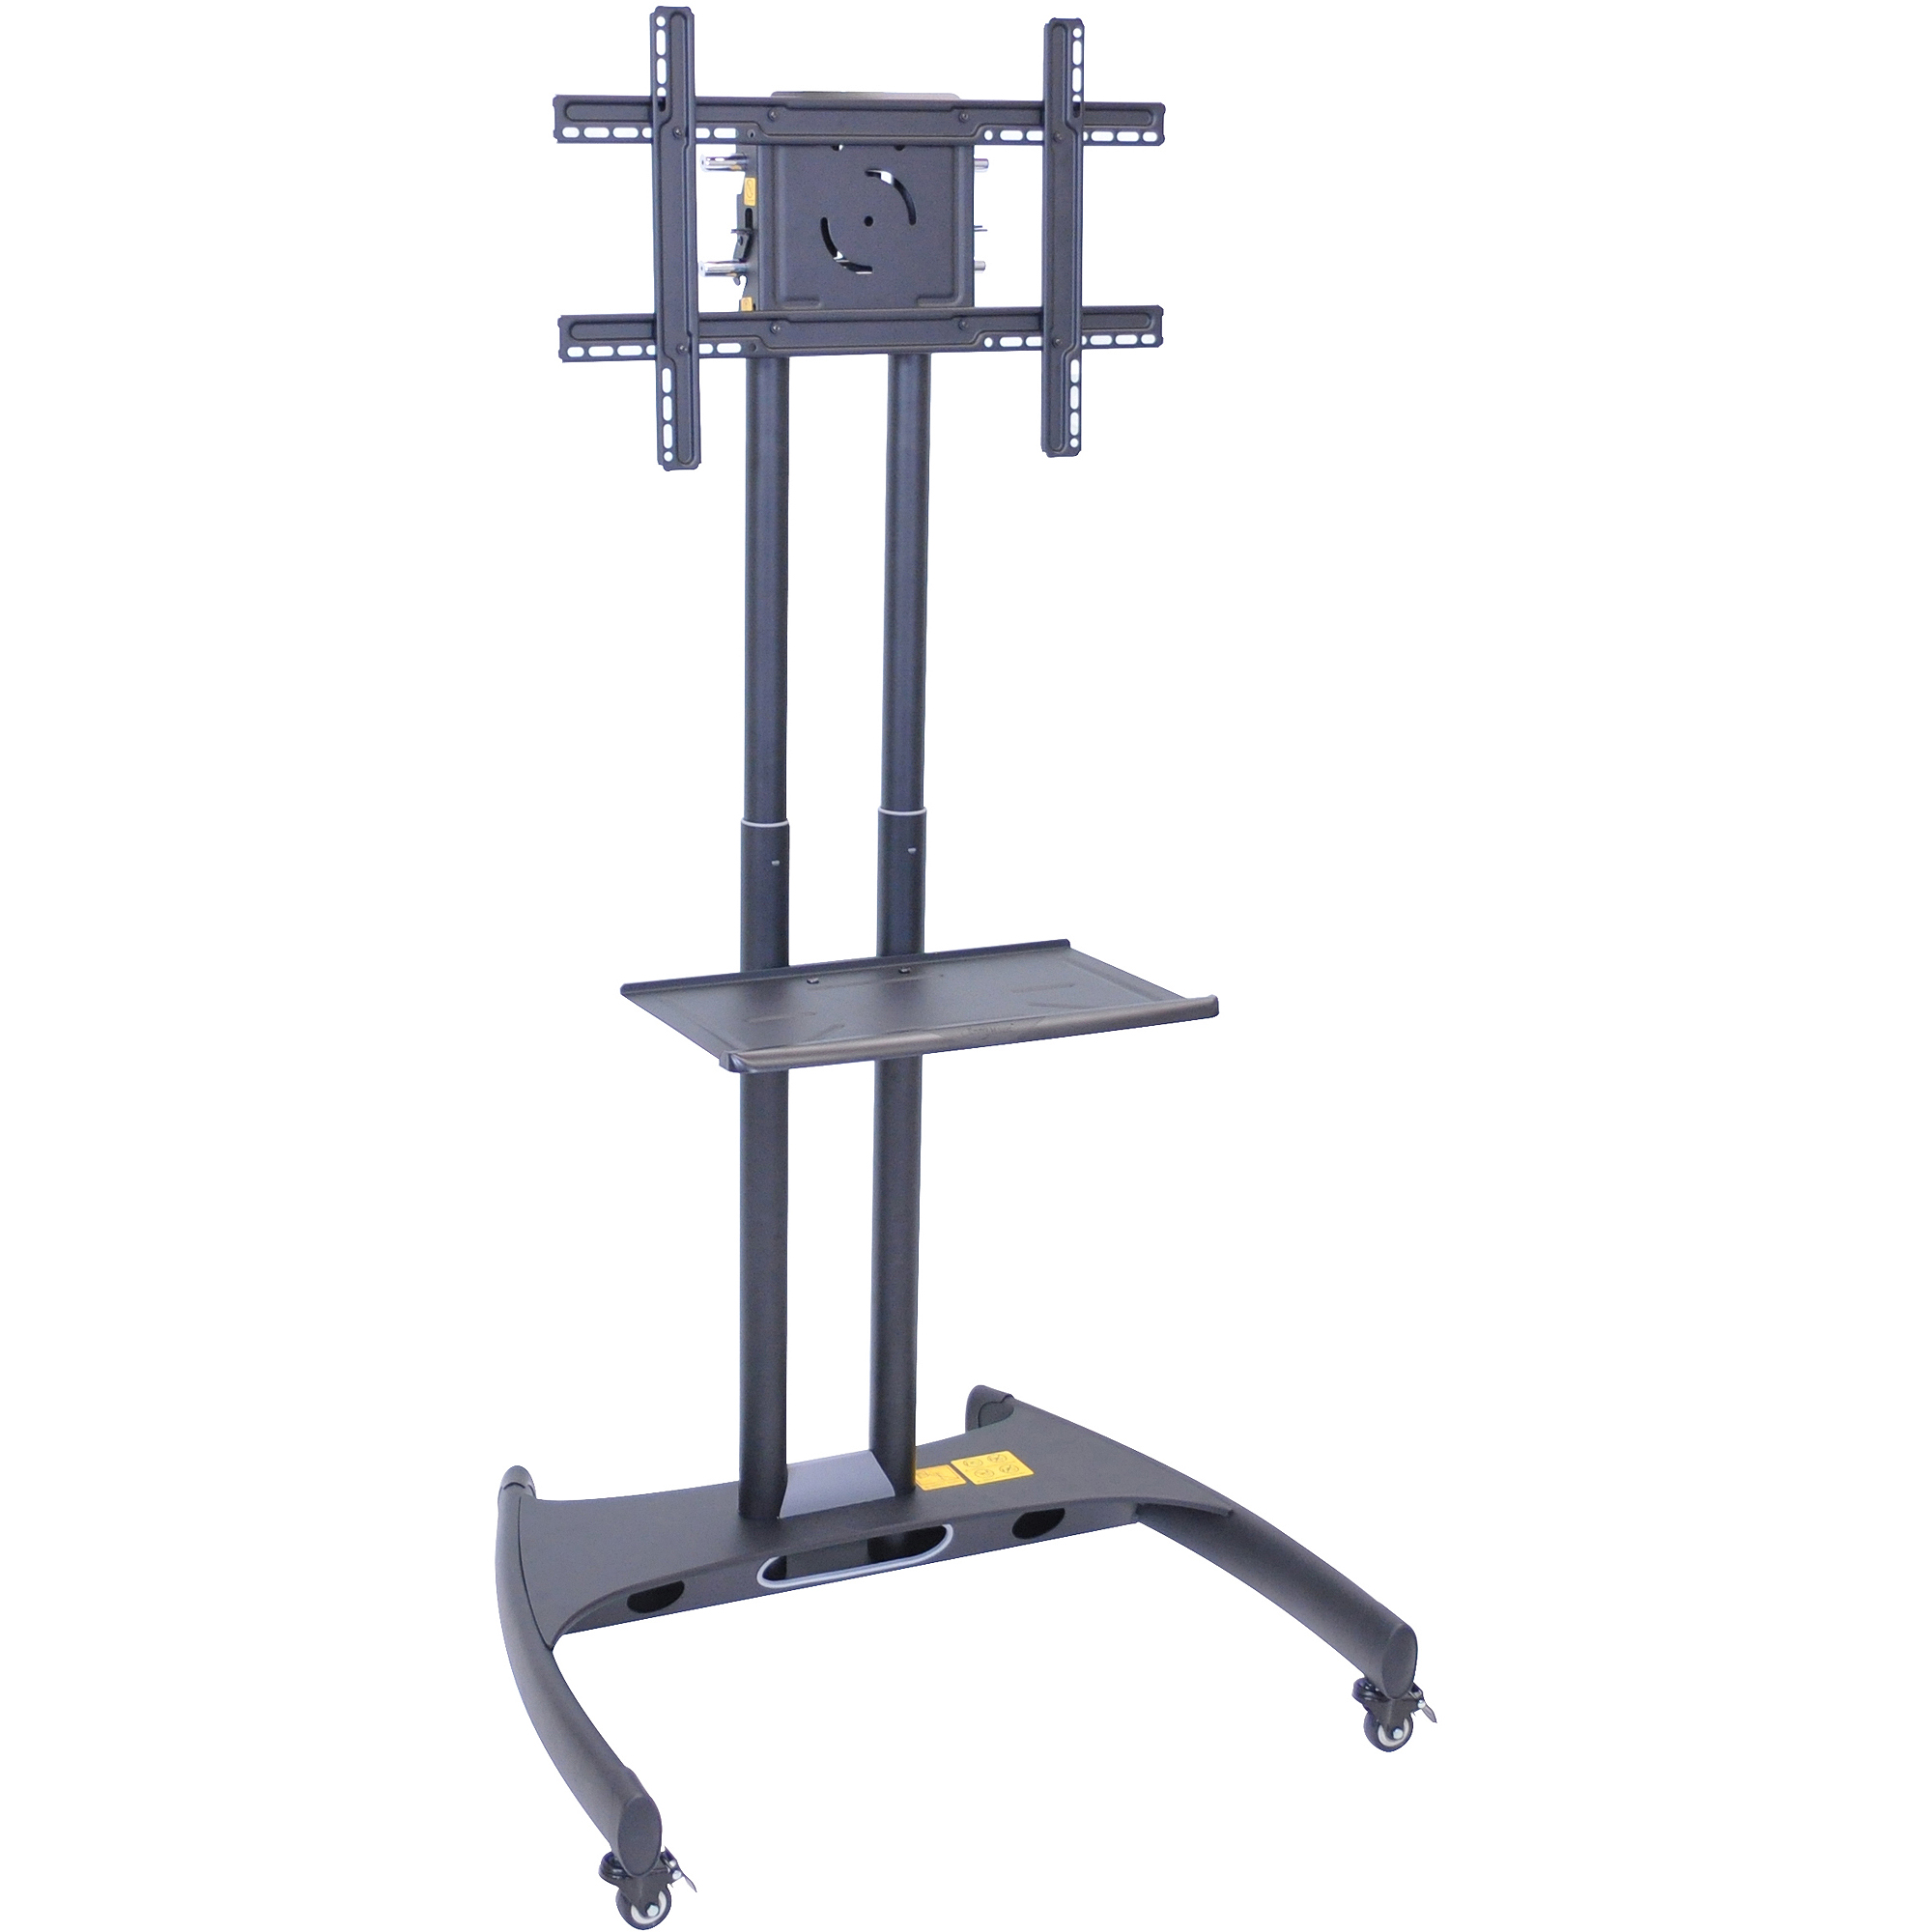 Luxor Adjustable Height TV Stand, Mount and Shelf, Black by Luxor